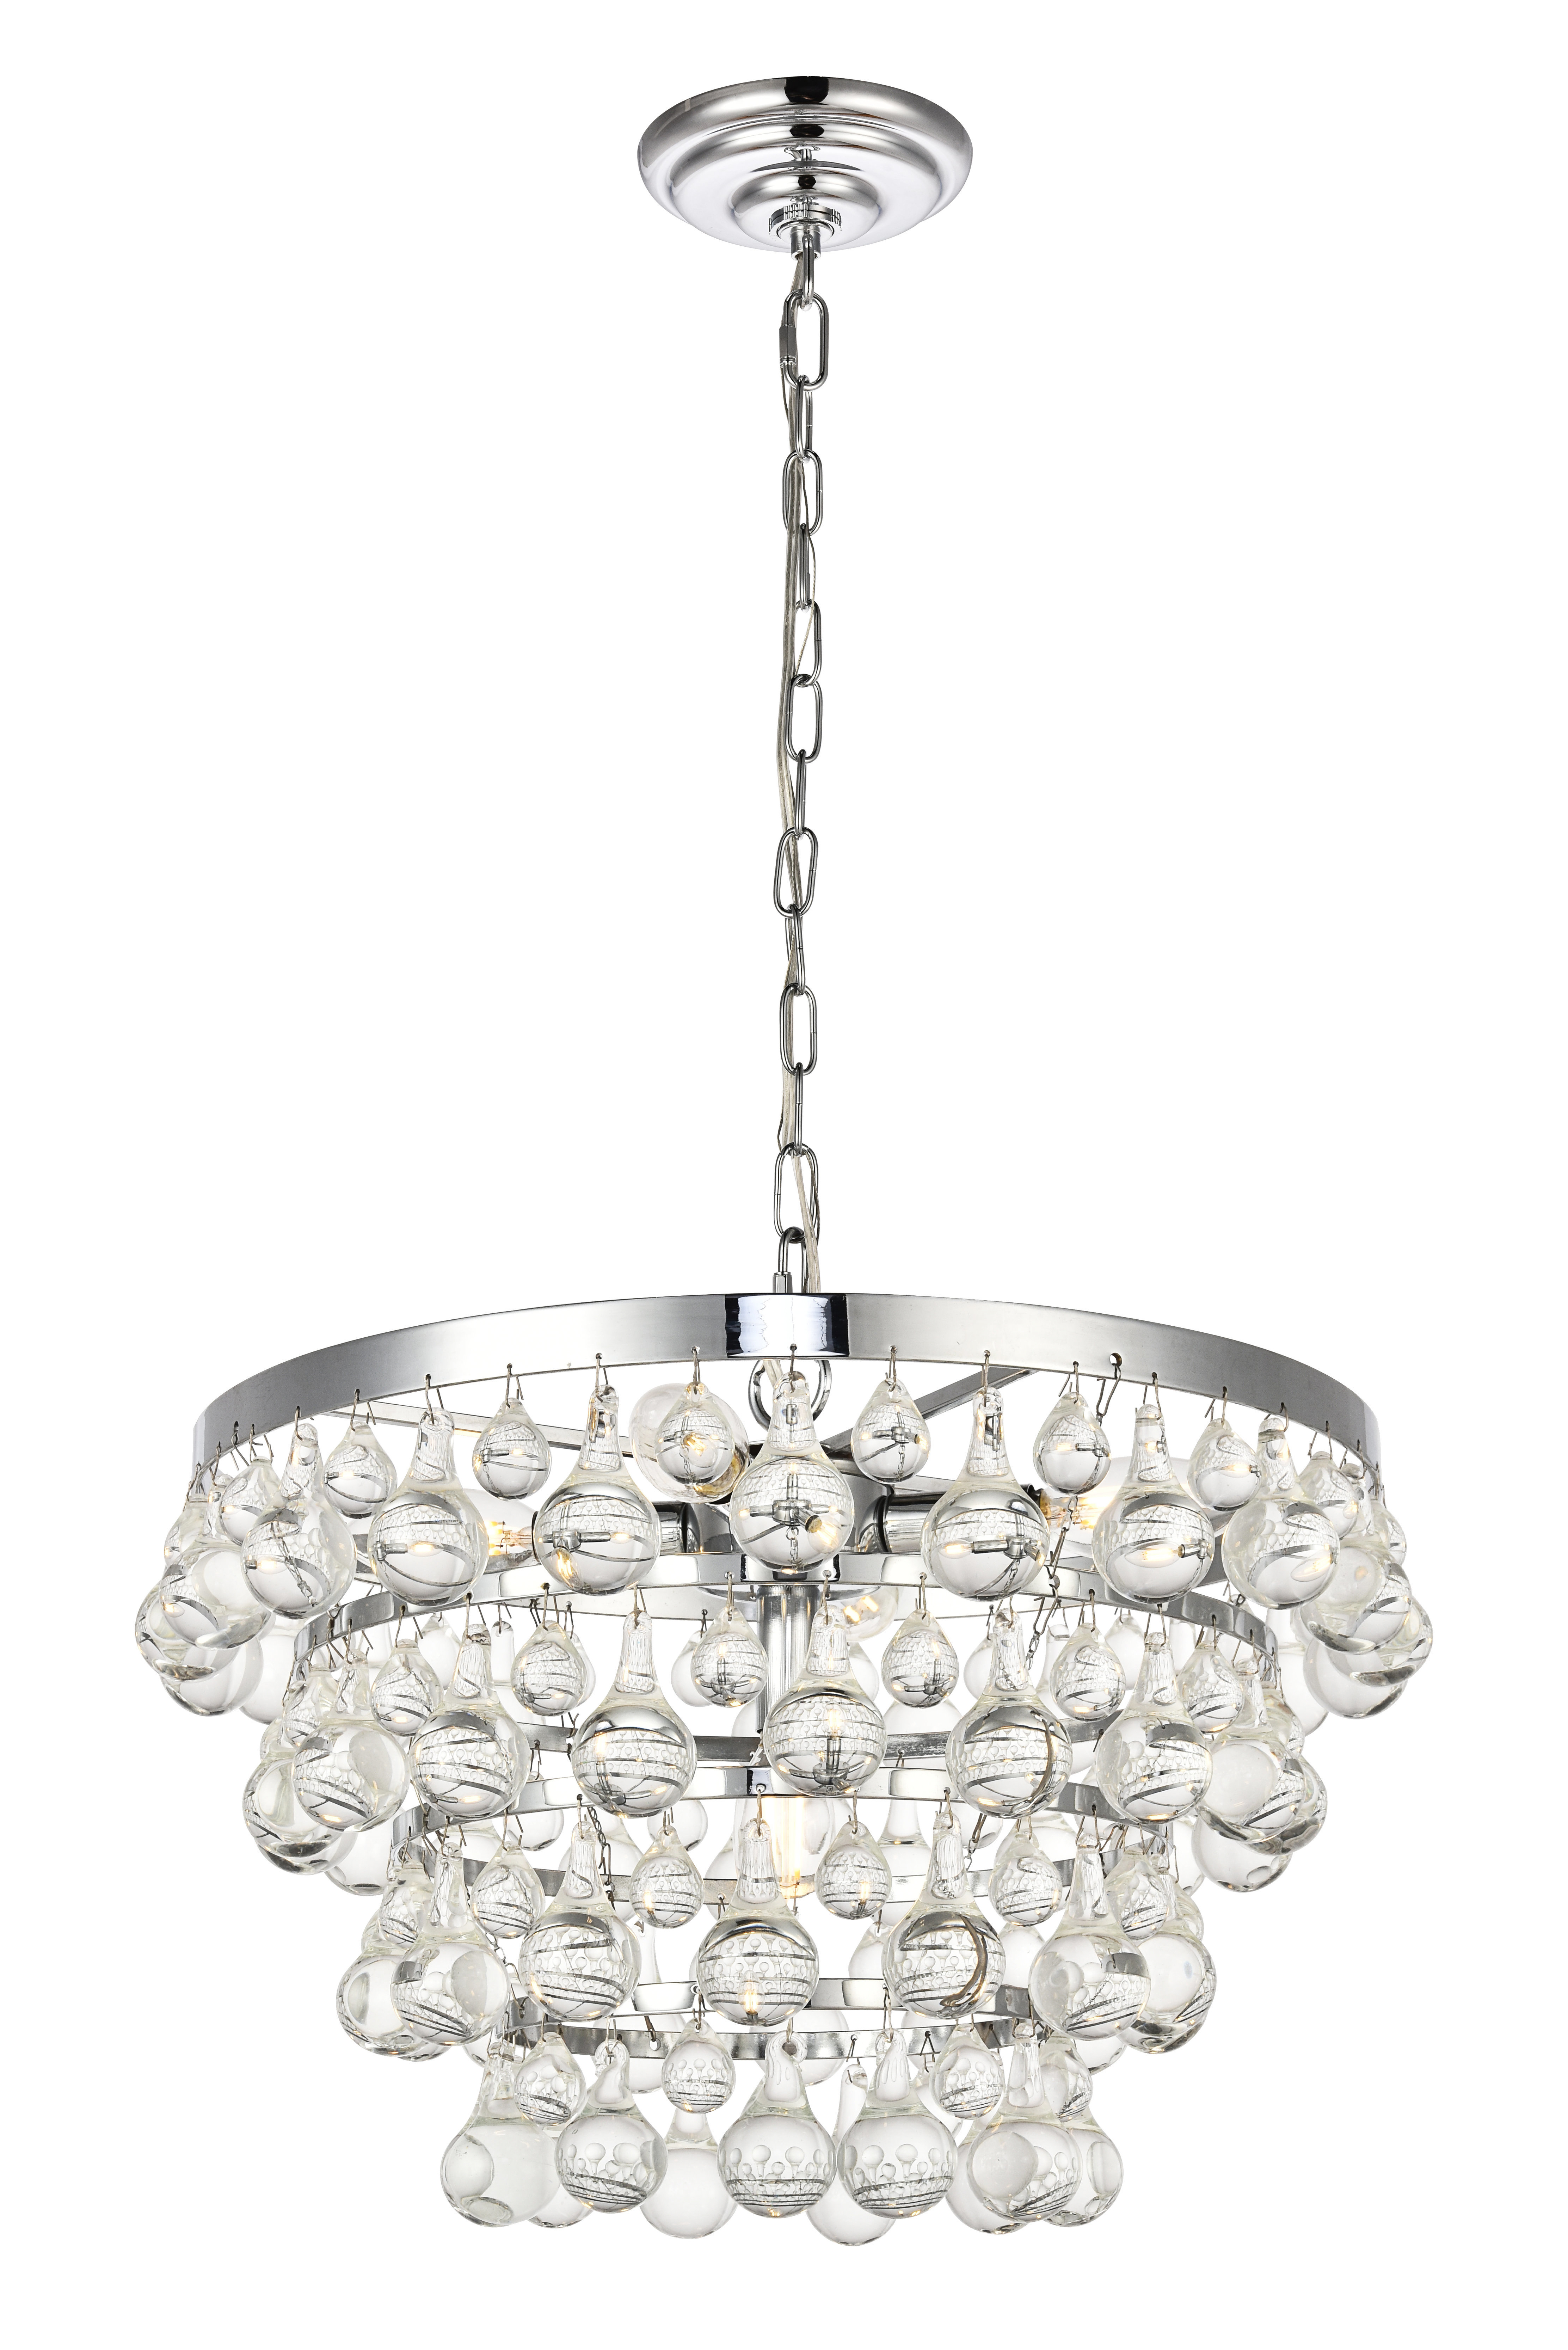 Well Liked Bramers 6 Light Novelty Chandeliers Throughout Botolph 5 Light Novelty Chandelier (View 19 of 20)